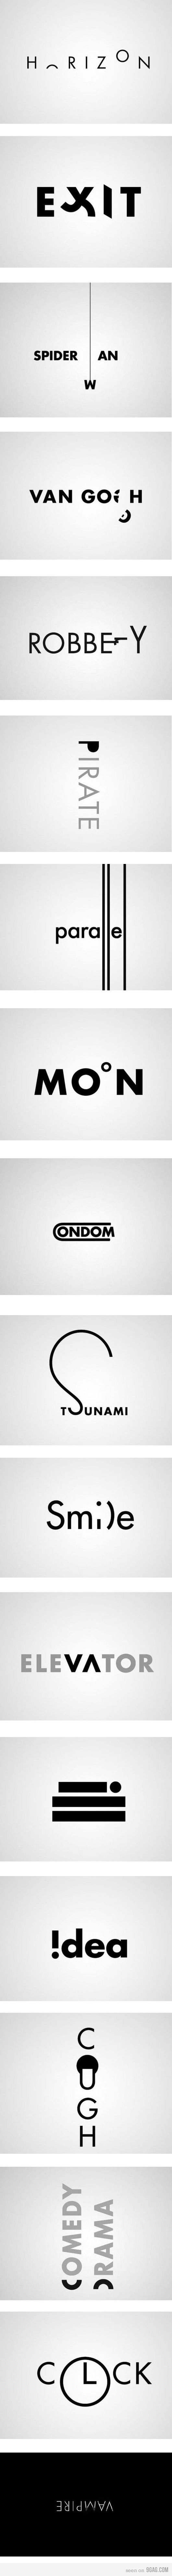 Awesome use of typography